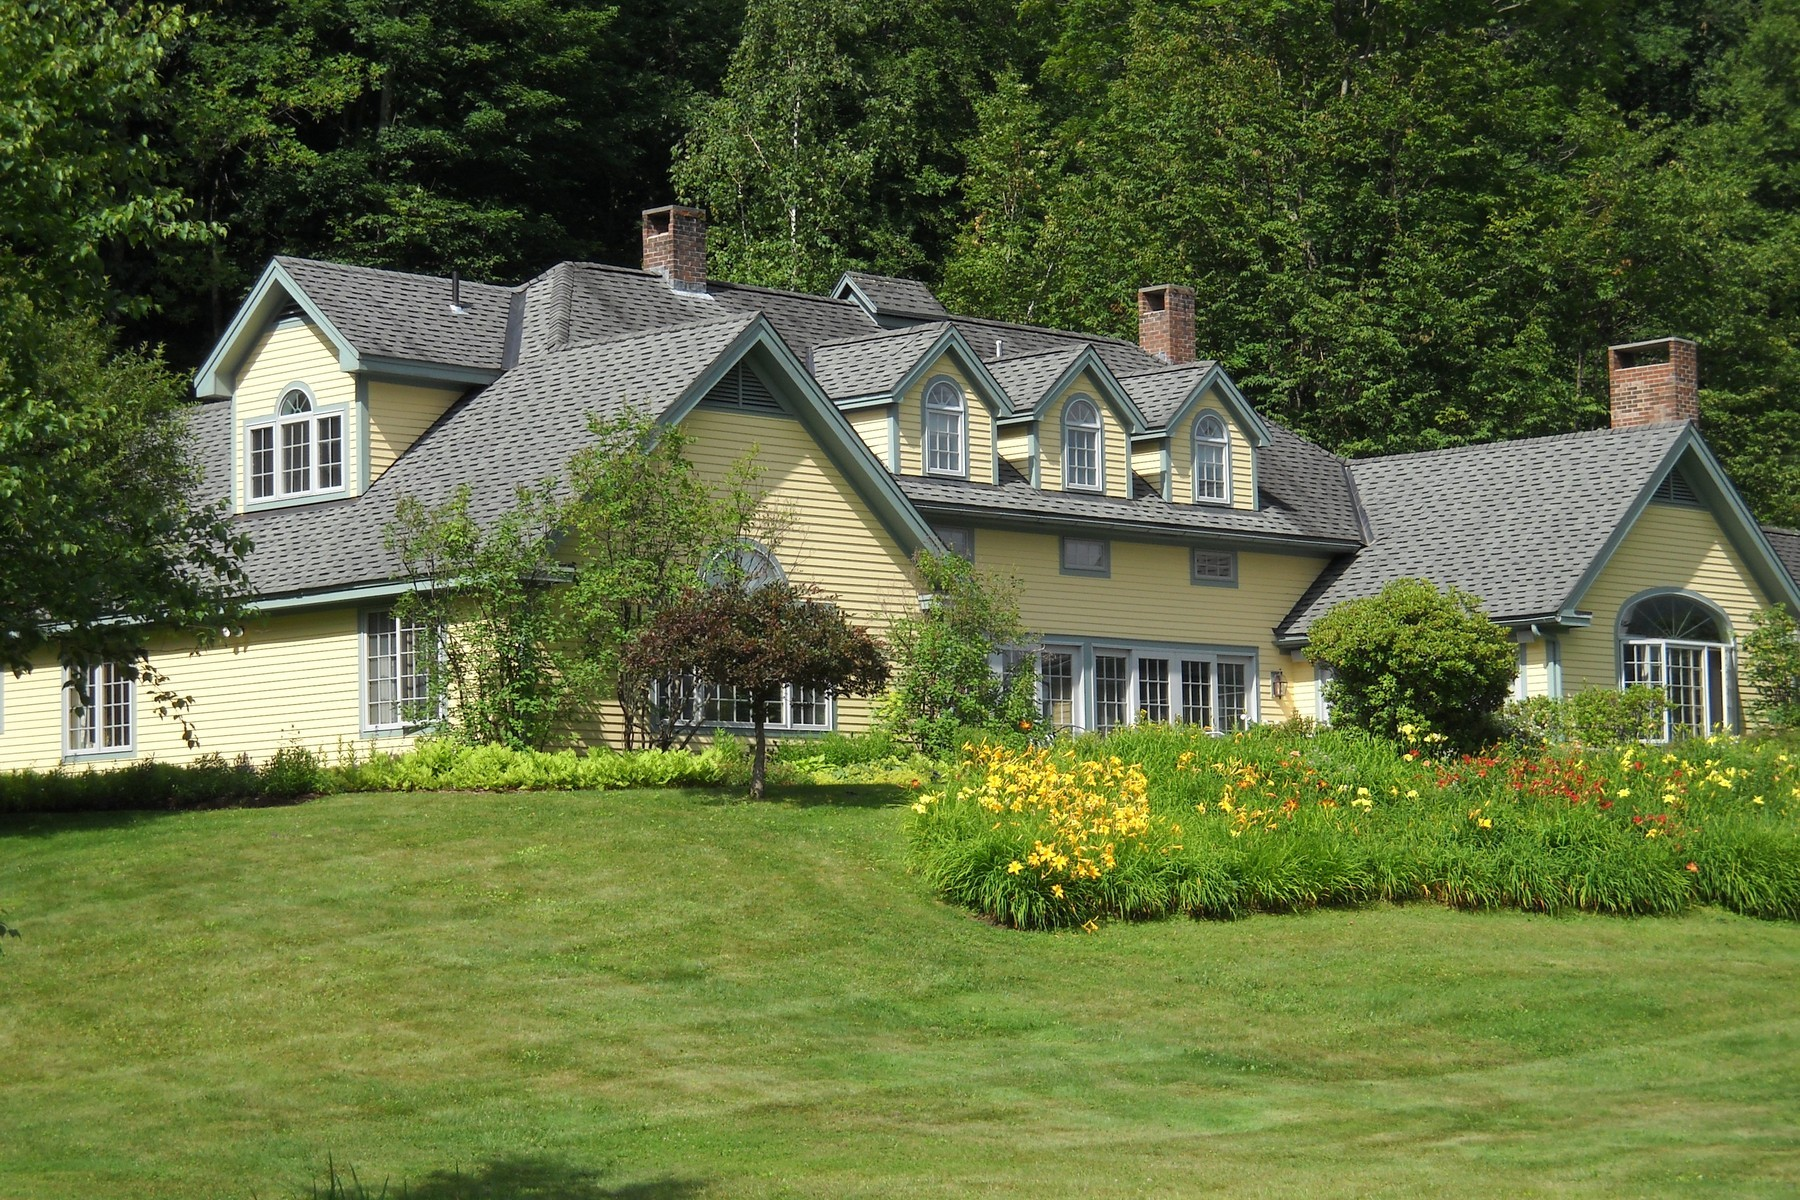 Single Family Home for Sale at Elegant Contemporary on 72 Acres 208 Lower Hollow Rd Dorset, Vermont, 05251 United States